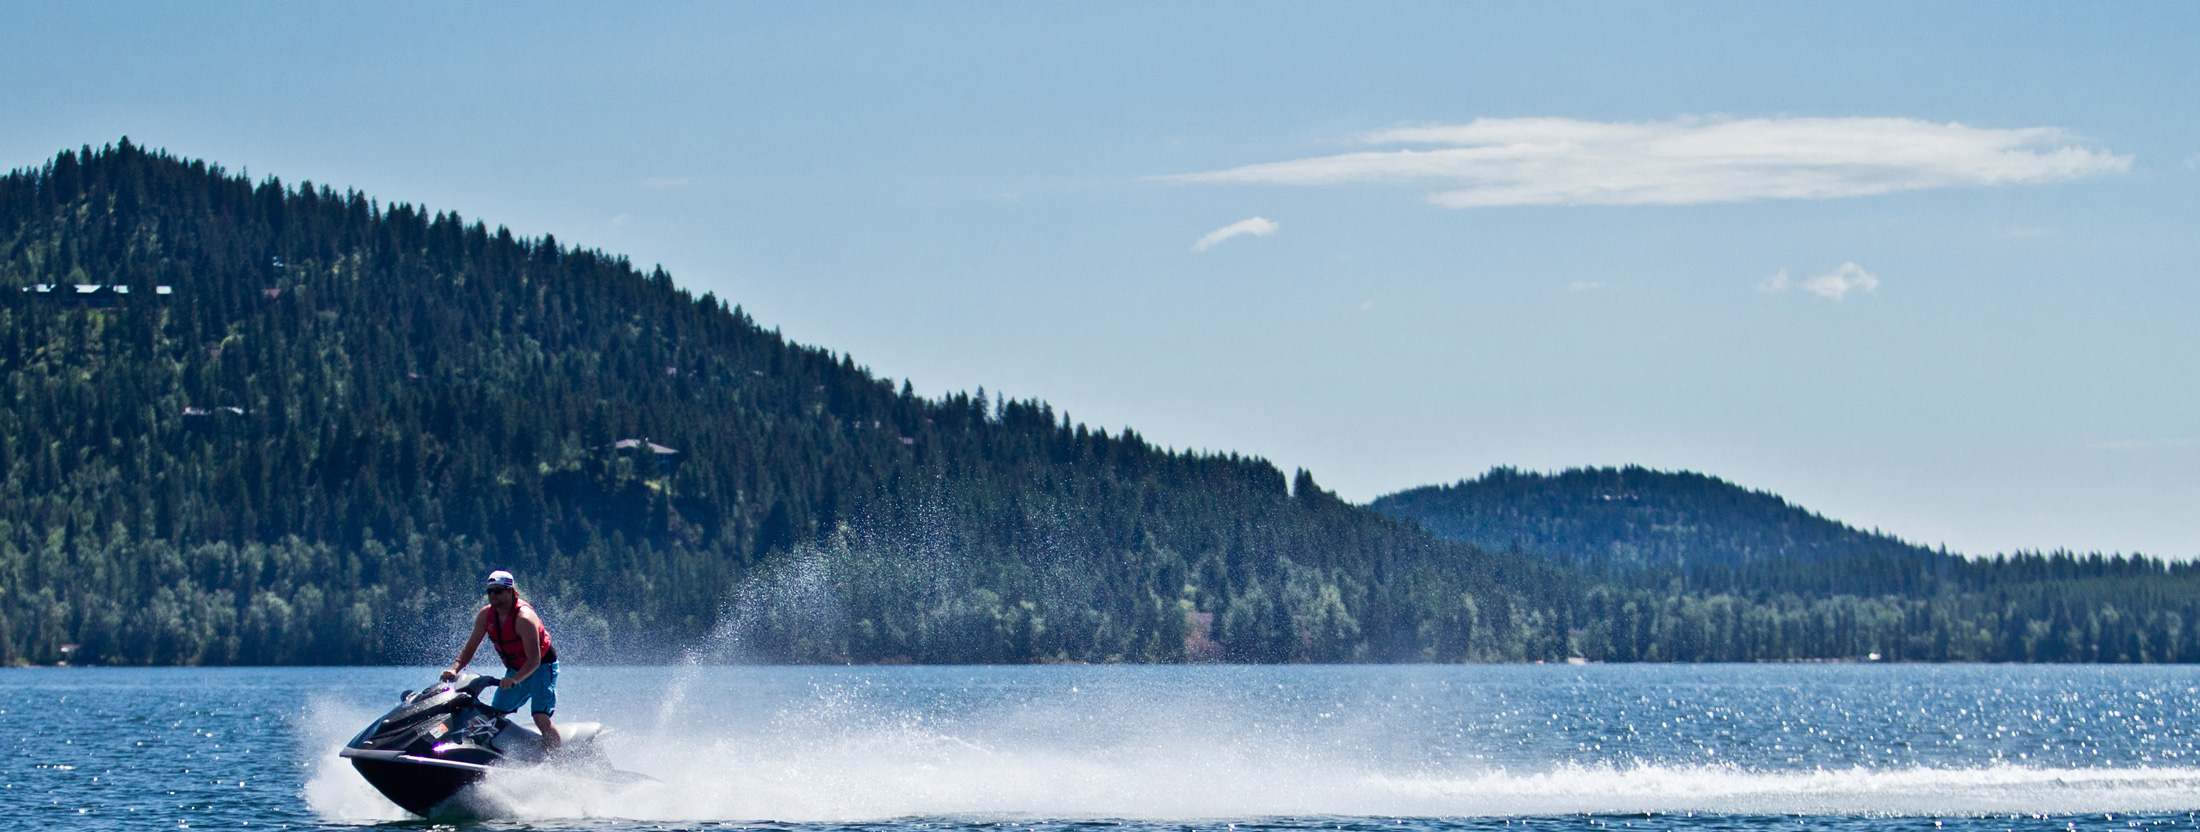 A jet skiier takes to a Western Montana lake in the fall.